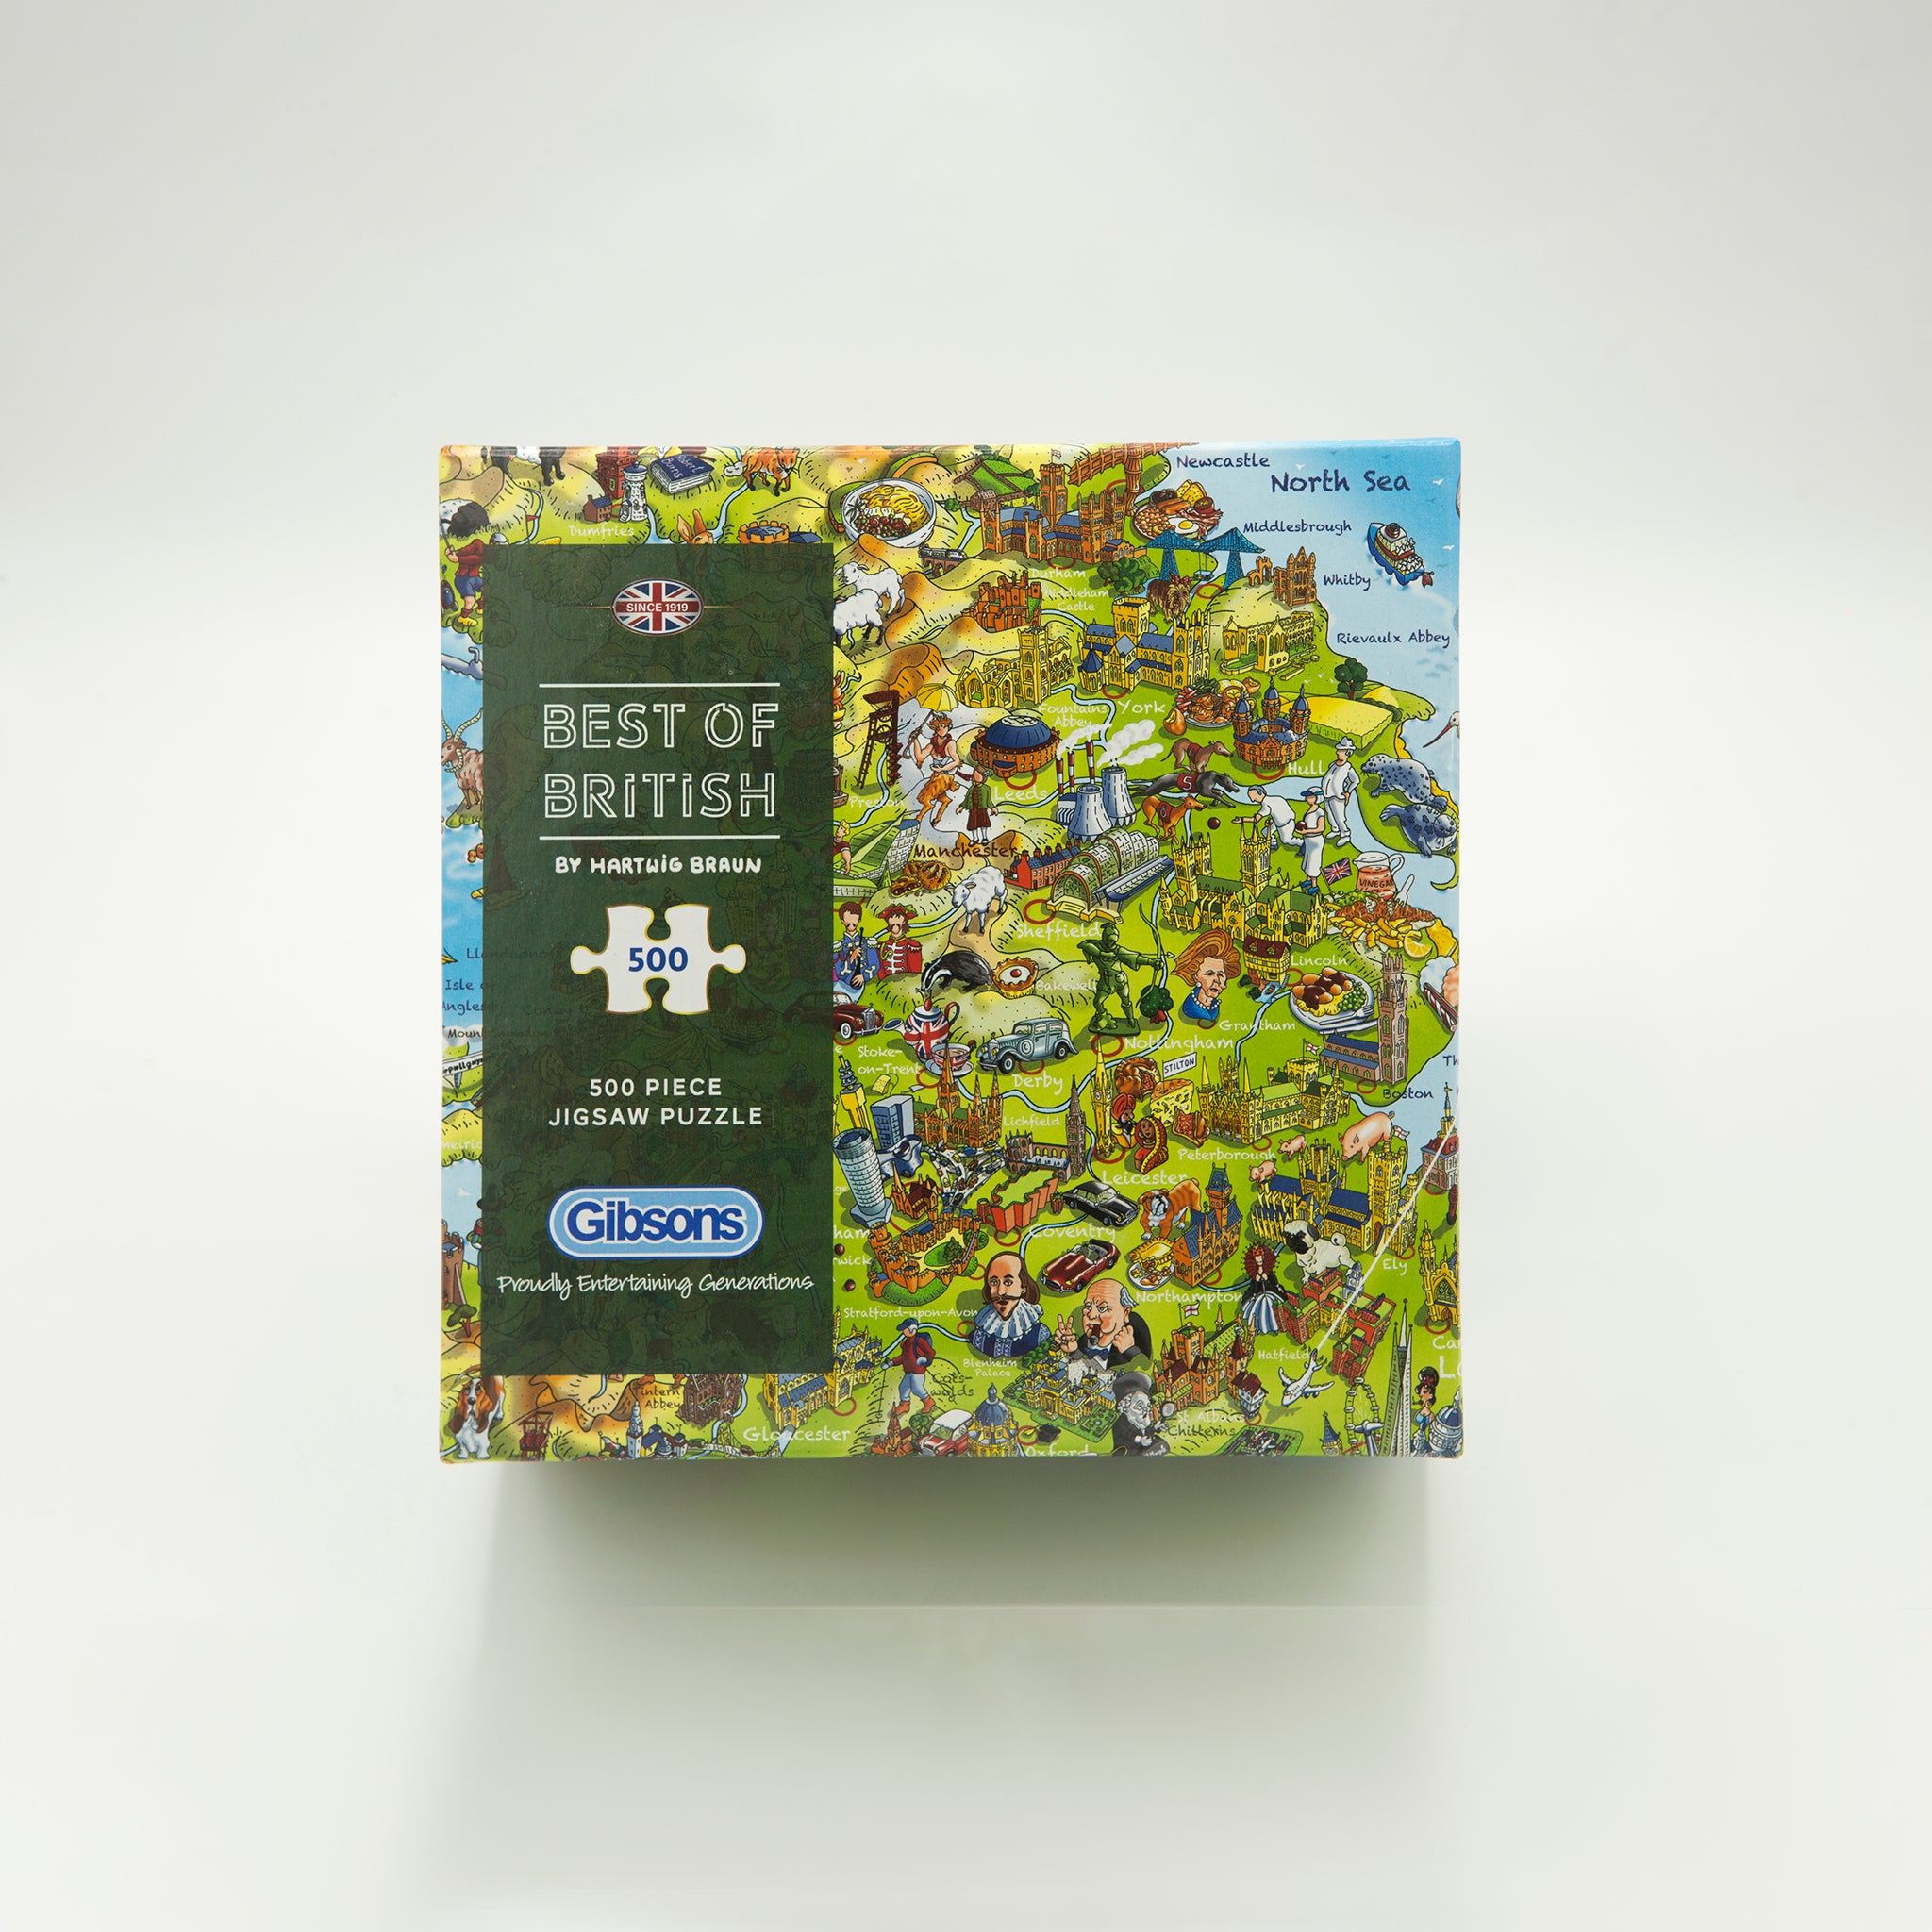 Best of British 500 piece Jigsaw